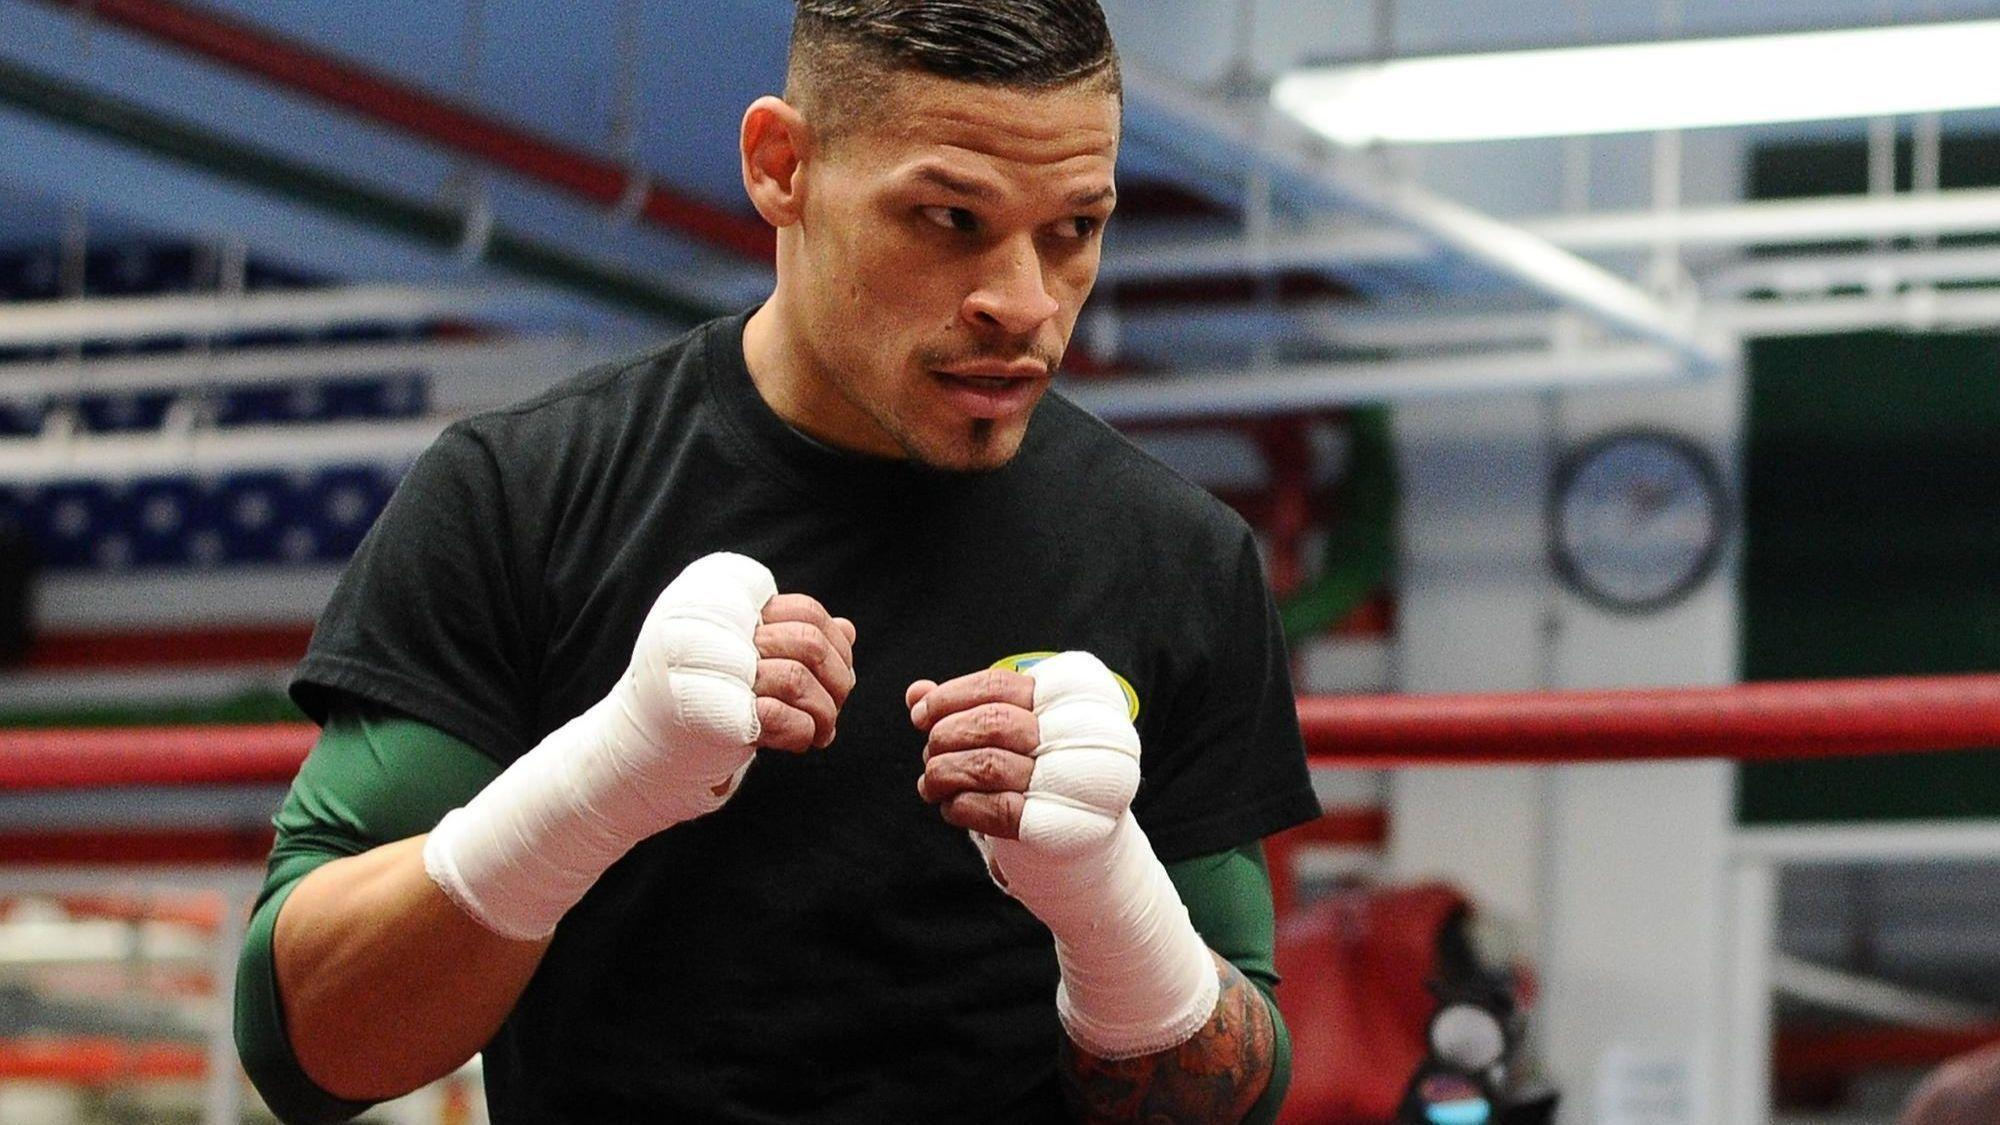 He's professional boxing's first openly gay athlete — and Chicago's  honoring him at Pride, Puerto Rican parades